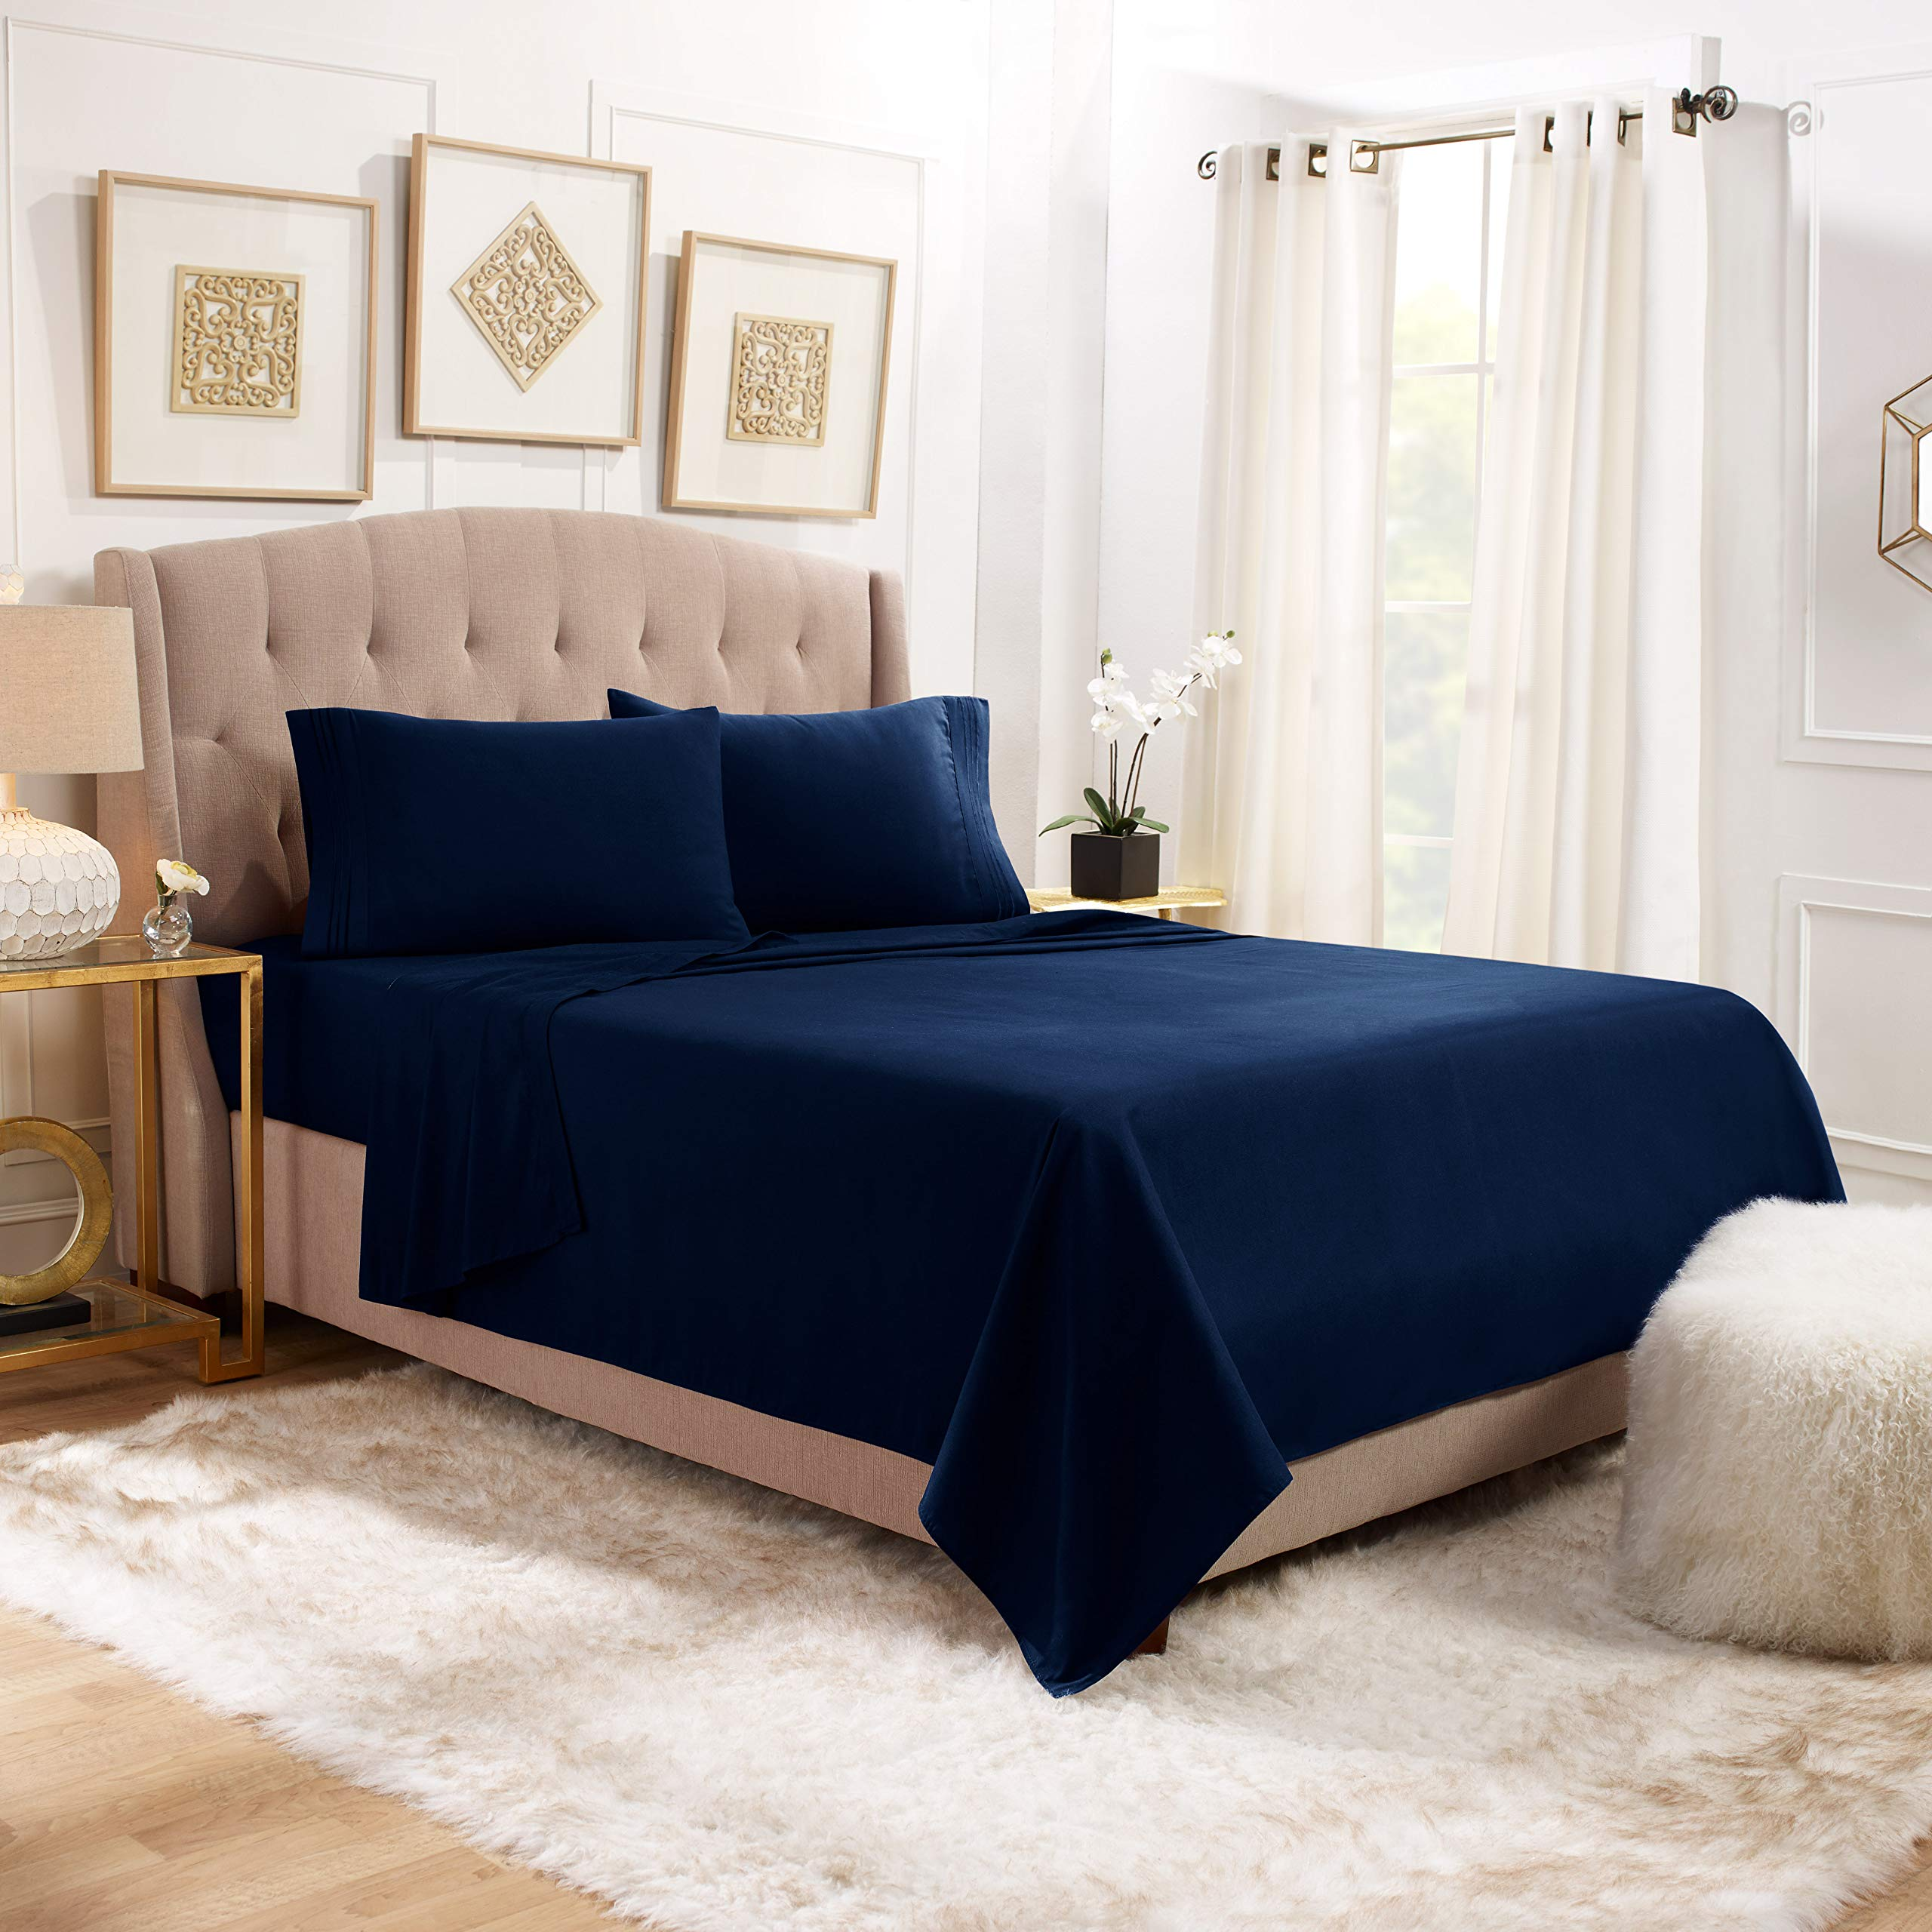 """Empyrean Bedding 14"""" - 16"""" Deep Pocket Fitted Sheet 4 Piece Set - Hotel Luxury Soft Double Brushed Microfiber Top Sheet - Wrinkle Free Fitted Bed Sheet, Flat Sheet and 2 Pillow Cases - Queen, Navy"""